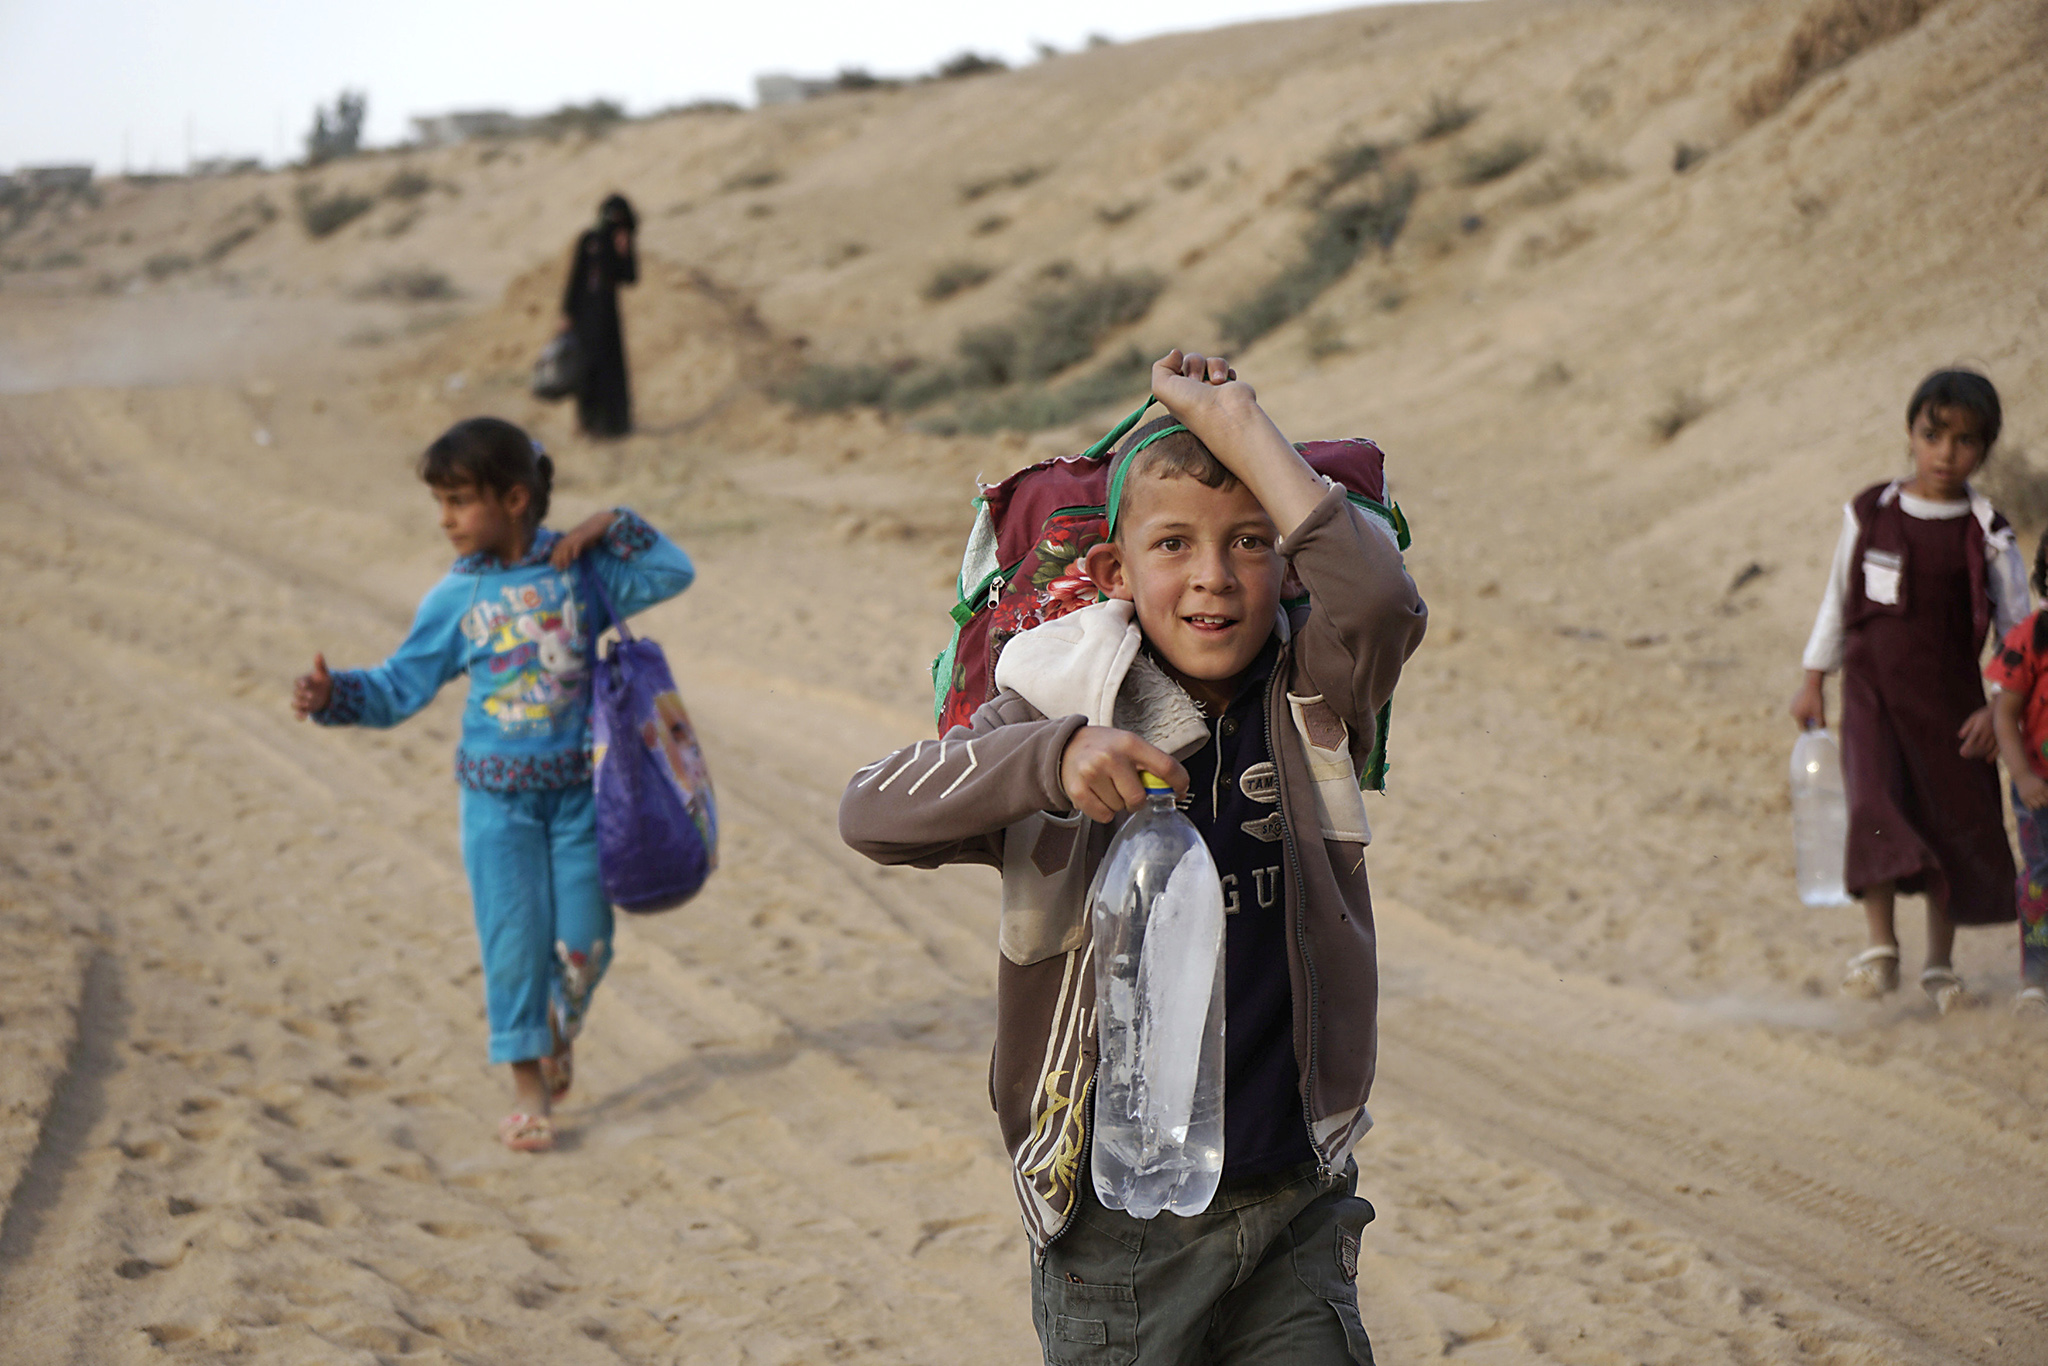 Displaced people, who are fleeing from clashes in Al-hud village, south of Mosul, head to Qayyarah, during an operation to attack Islamic State militants in Mosul, Iraq, October 18, 2016. Picture taken October 18, 2016.  REUTERS/Stringer  EDITORIAL USE ONLY. NO RESALES. NO ARCHIVE.